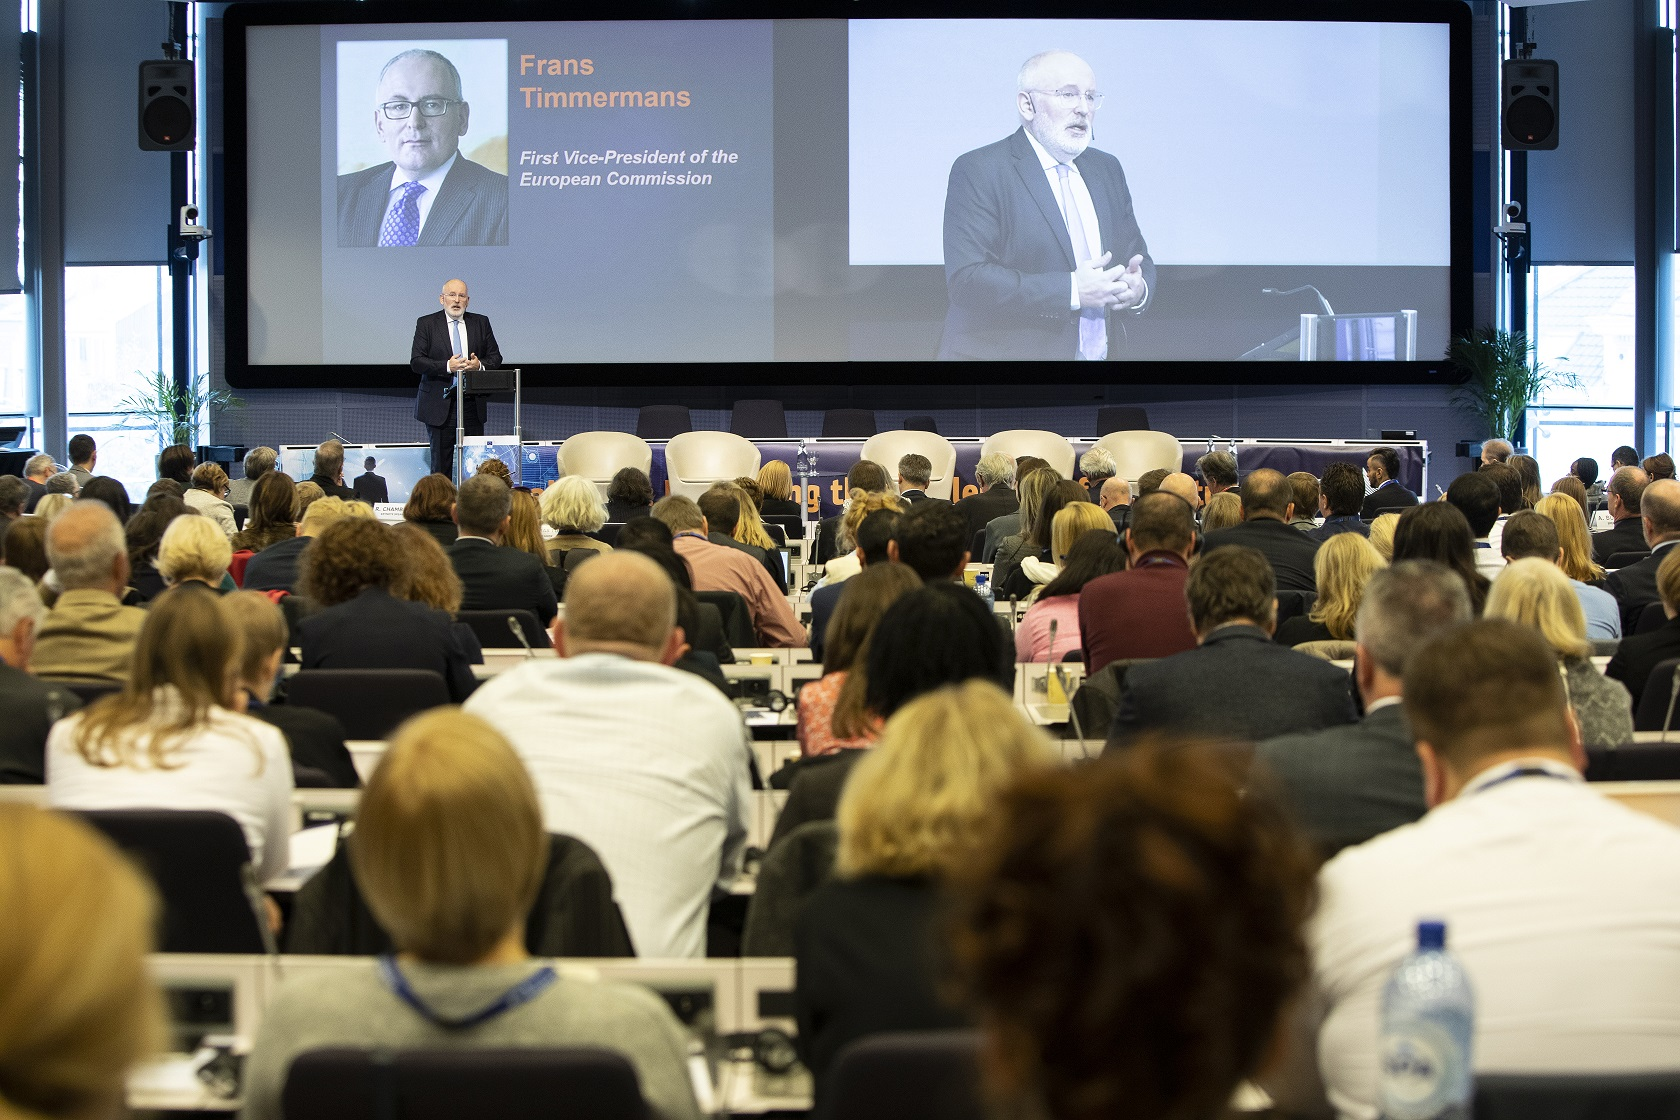 IAS Conference 2018 - Frans Timmermans